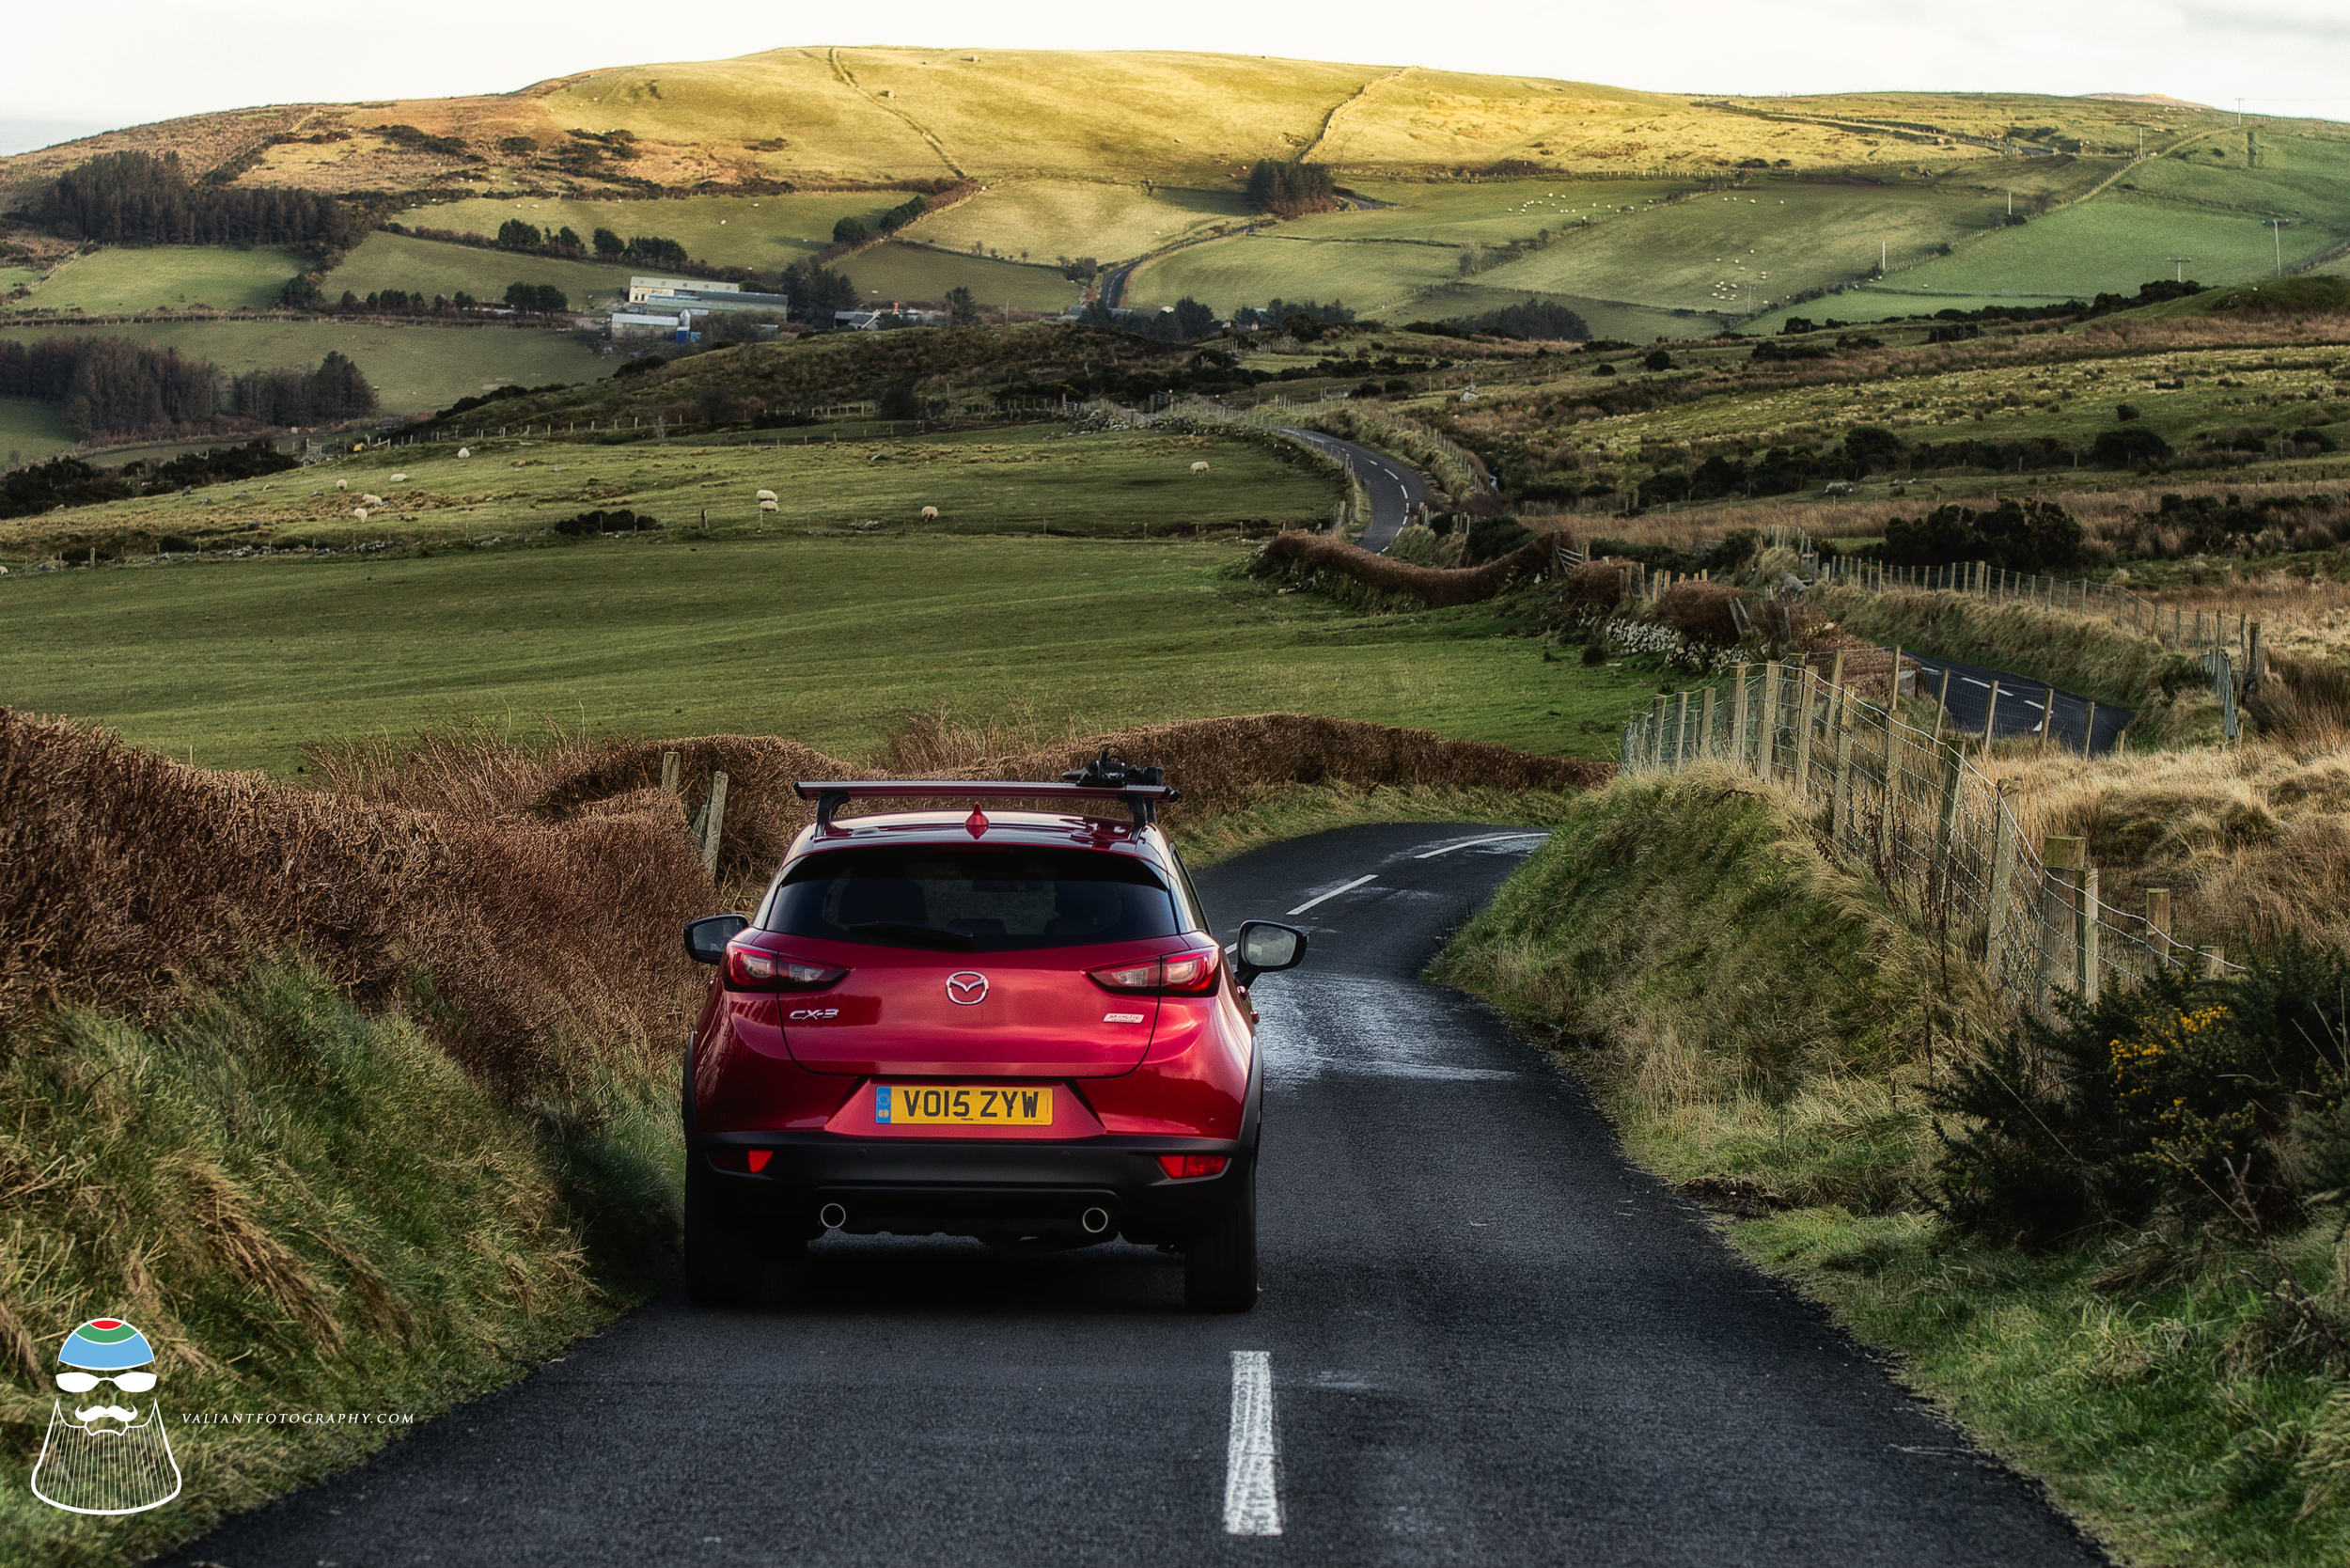 The Road to Torr Head